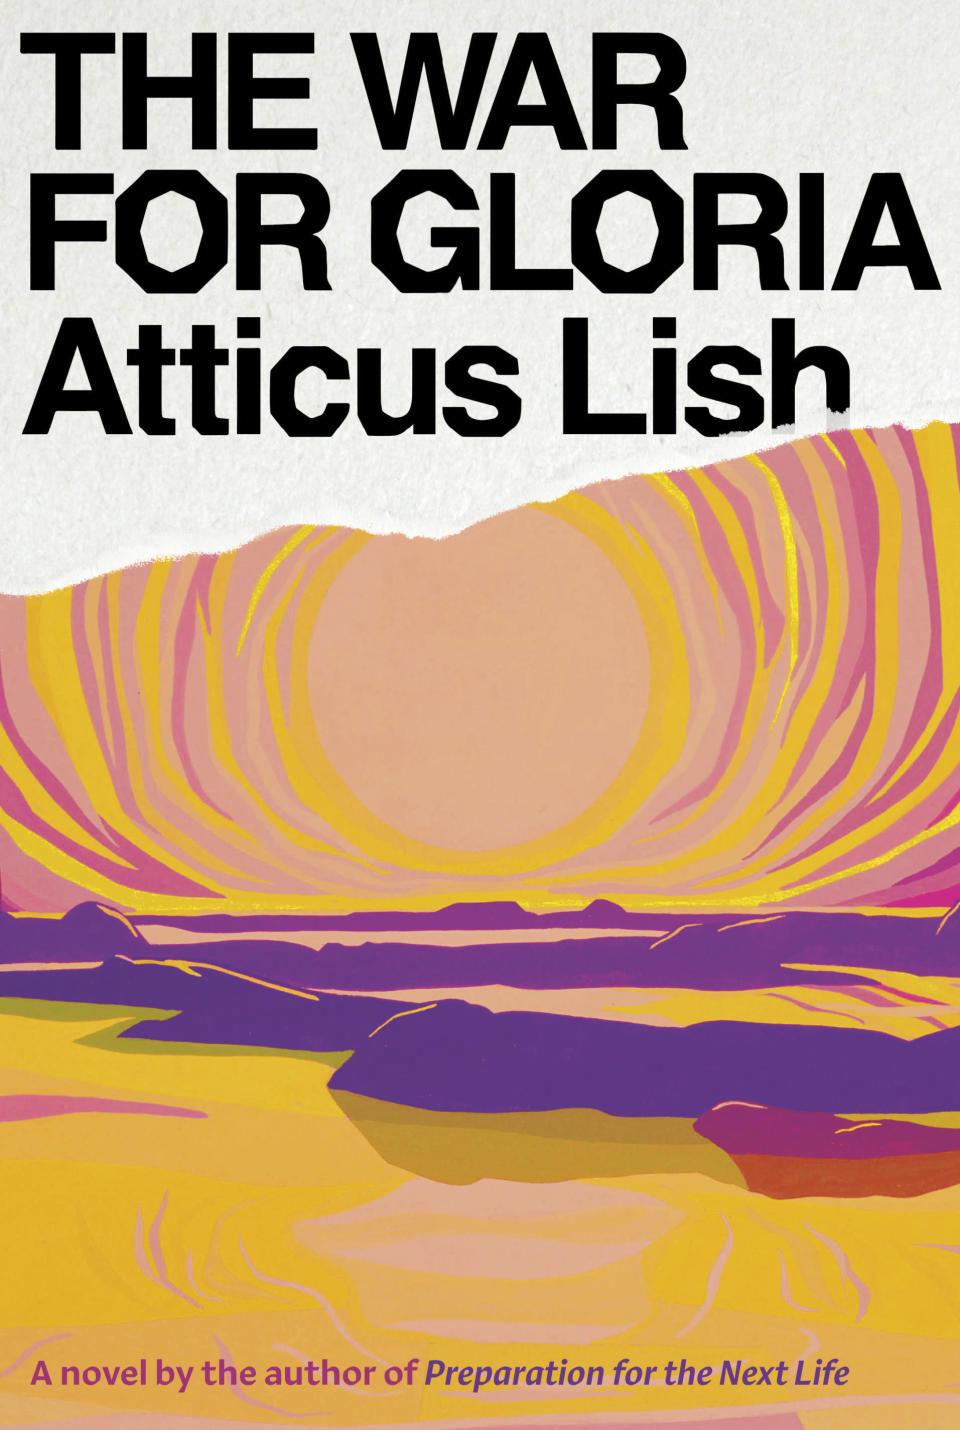 """This cover image released by Knopf shows """"The War for Gloria,"""" a novel by Atticus Lish, releasing Sept. 7. (Knopf via AP)"""